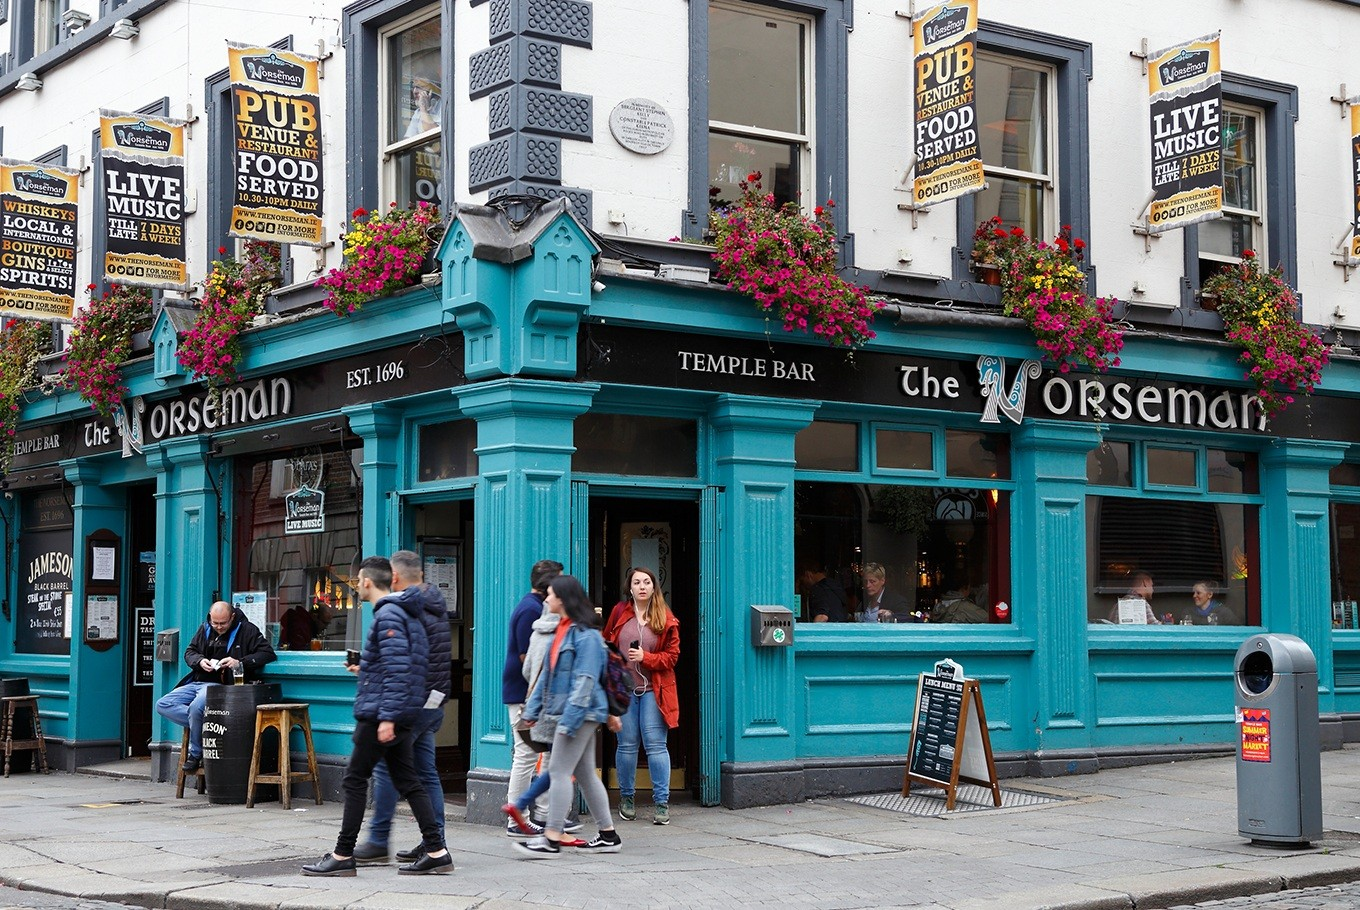 Pubs and nightclub venues are ubiquitous on the cobblestoned streets of Dublin's Temple Bar district.